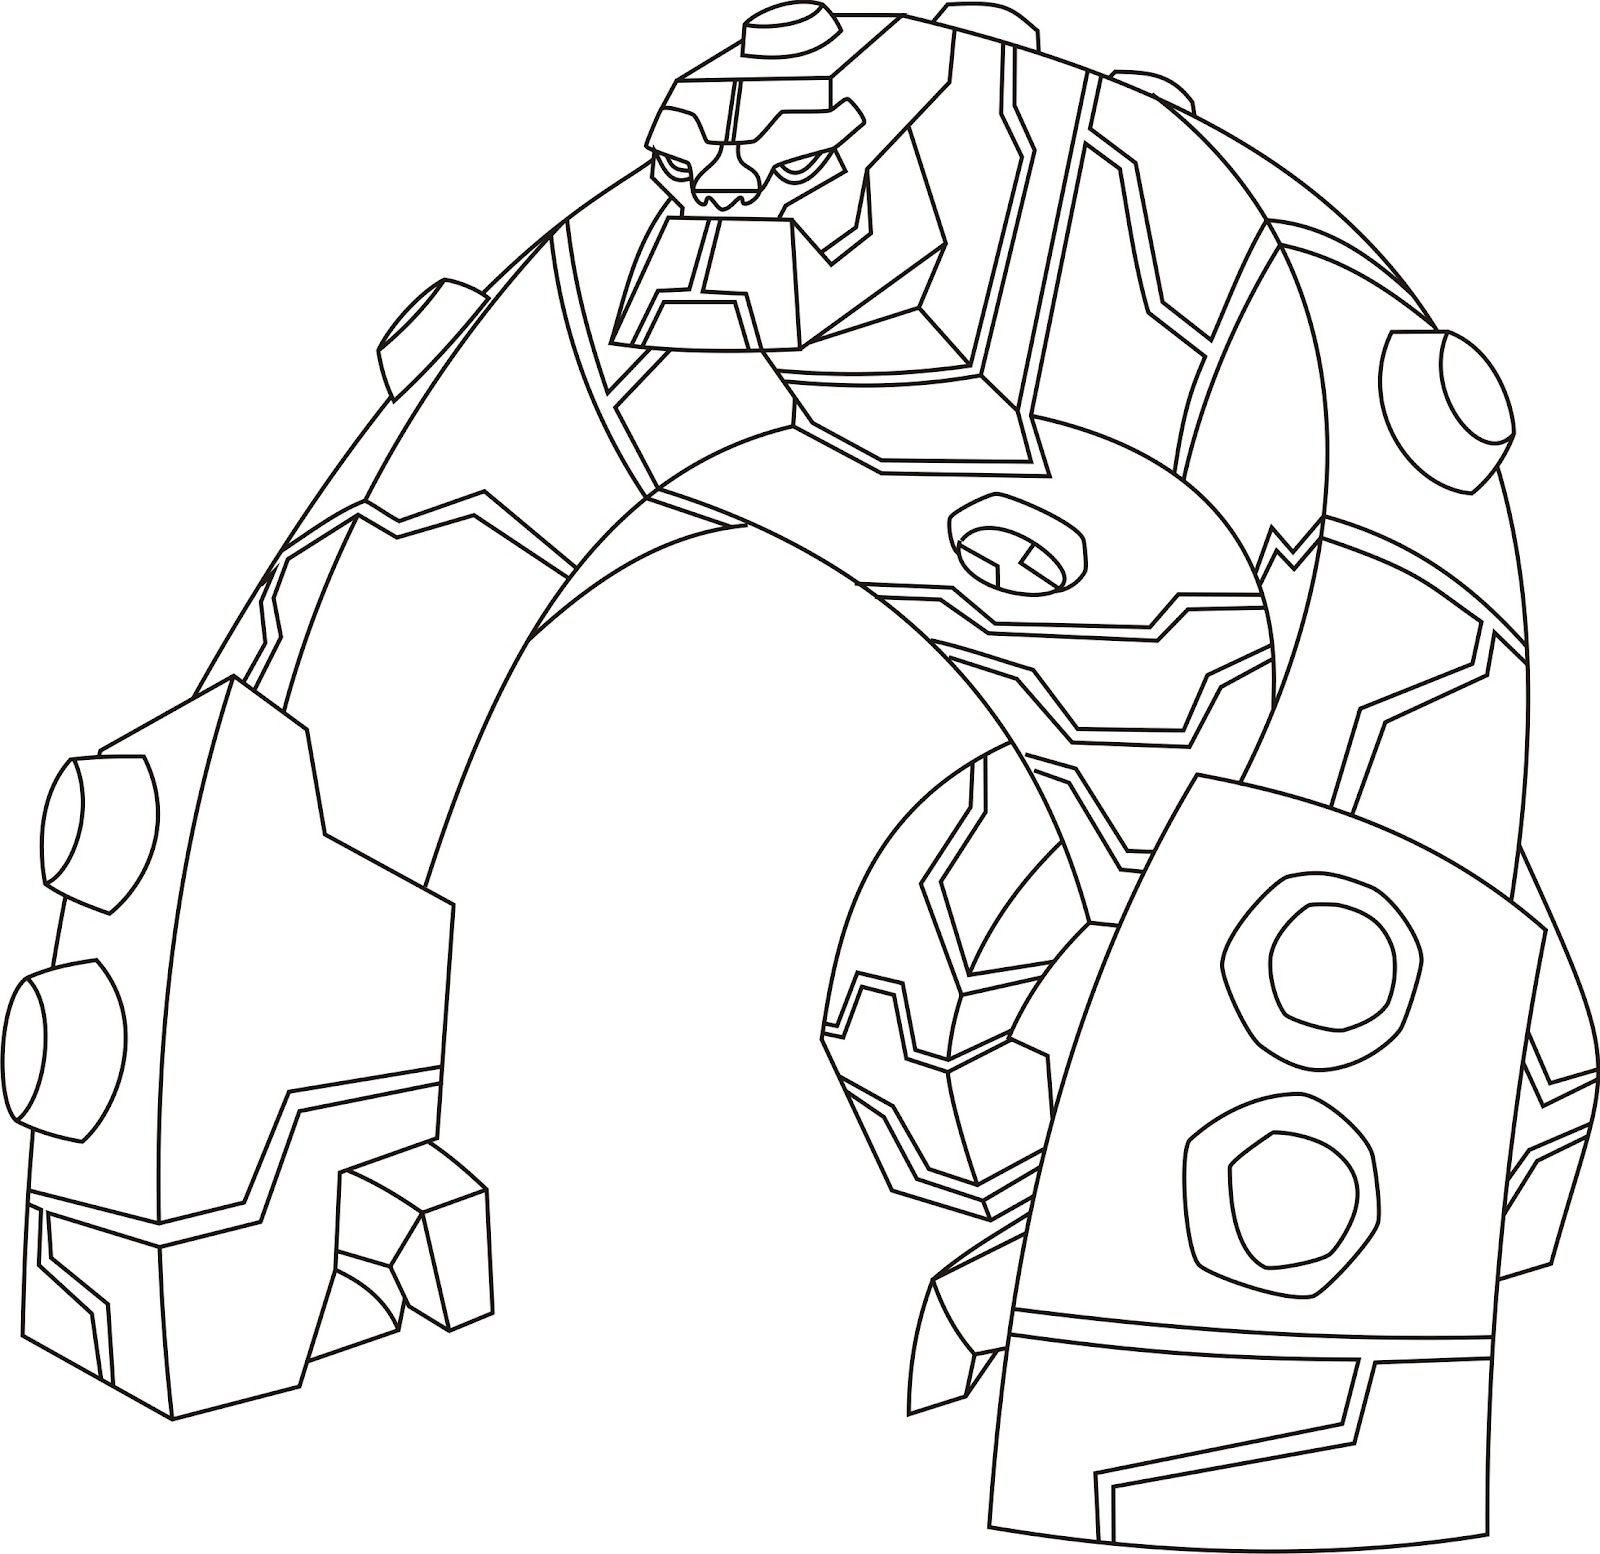 Ben-10-Coloring-Pages24.jpg (1600×1554) | Ben 10 | Pinterest